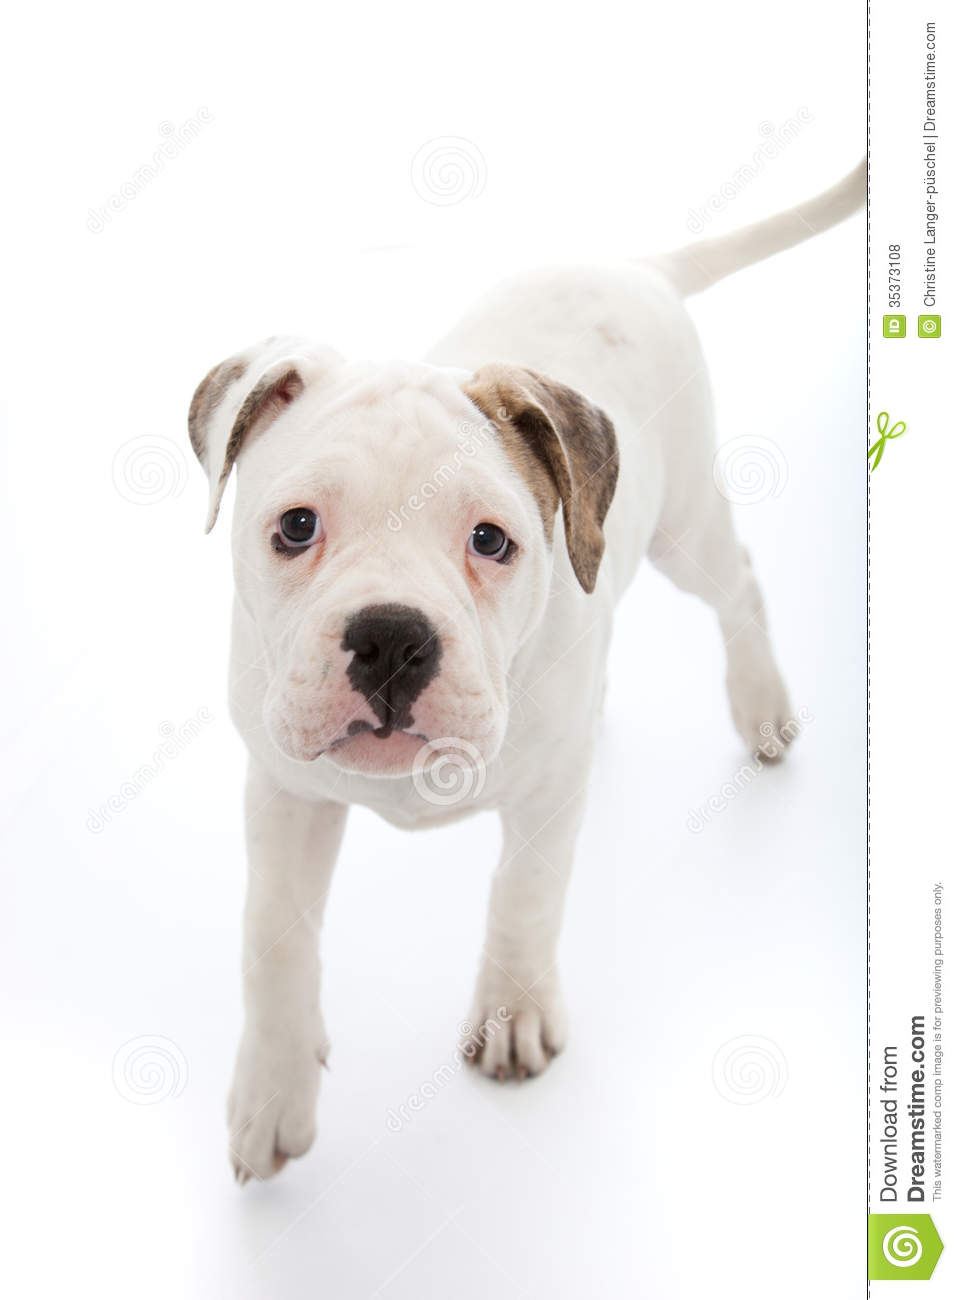 Adorable Little Dog With Sad Droopy Eyes Royalty Free ...